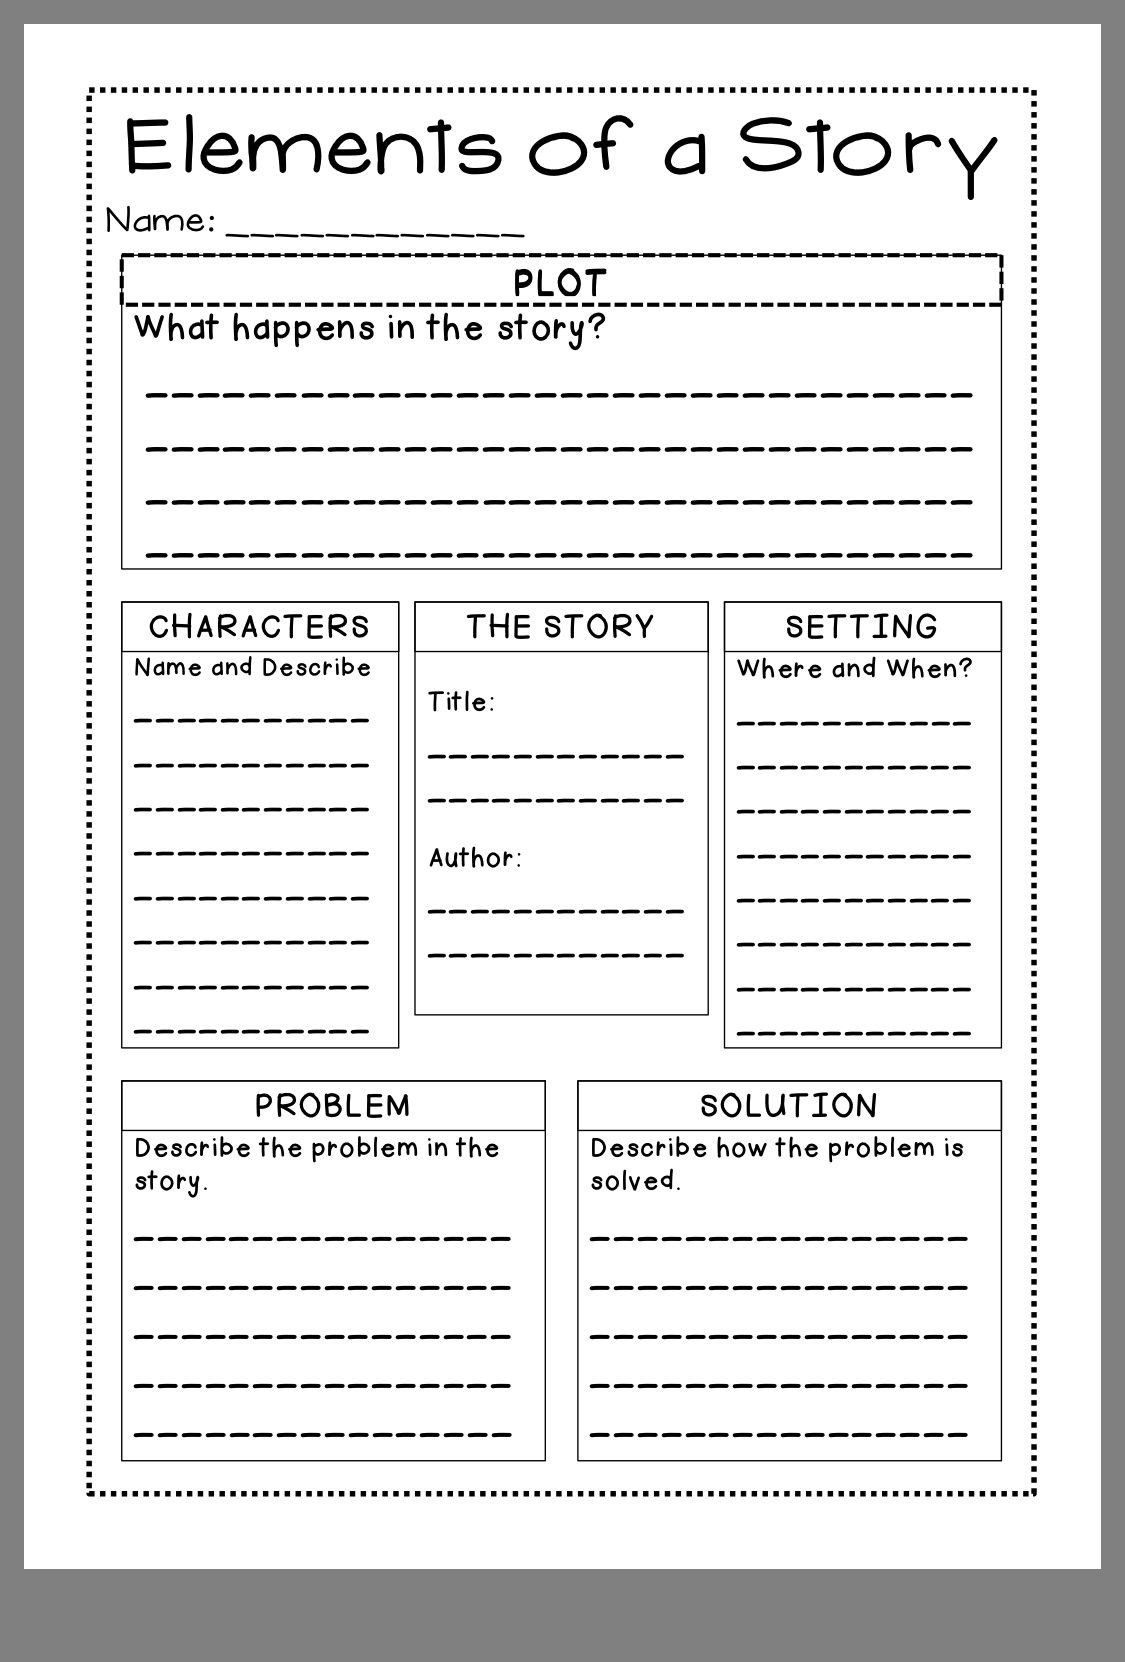 hight resolution of Story Elements Worksheet 4th Grade Pin by Jill Brewington On Story Elements    Story elements worksheet